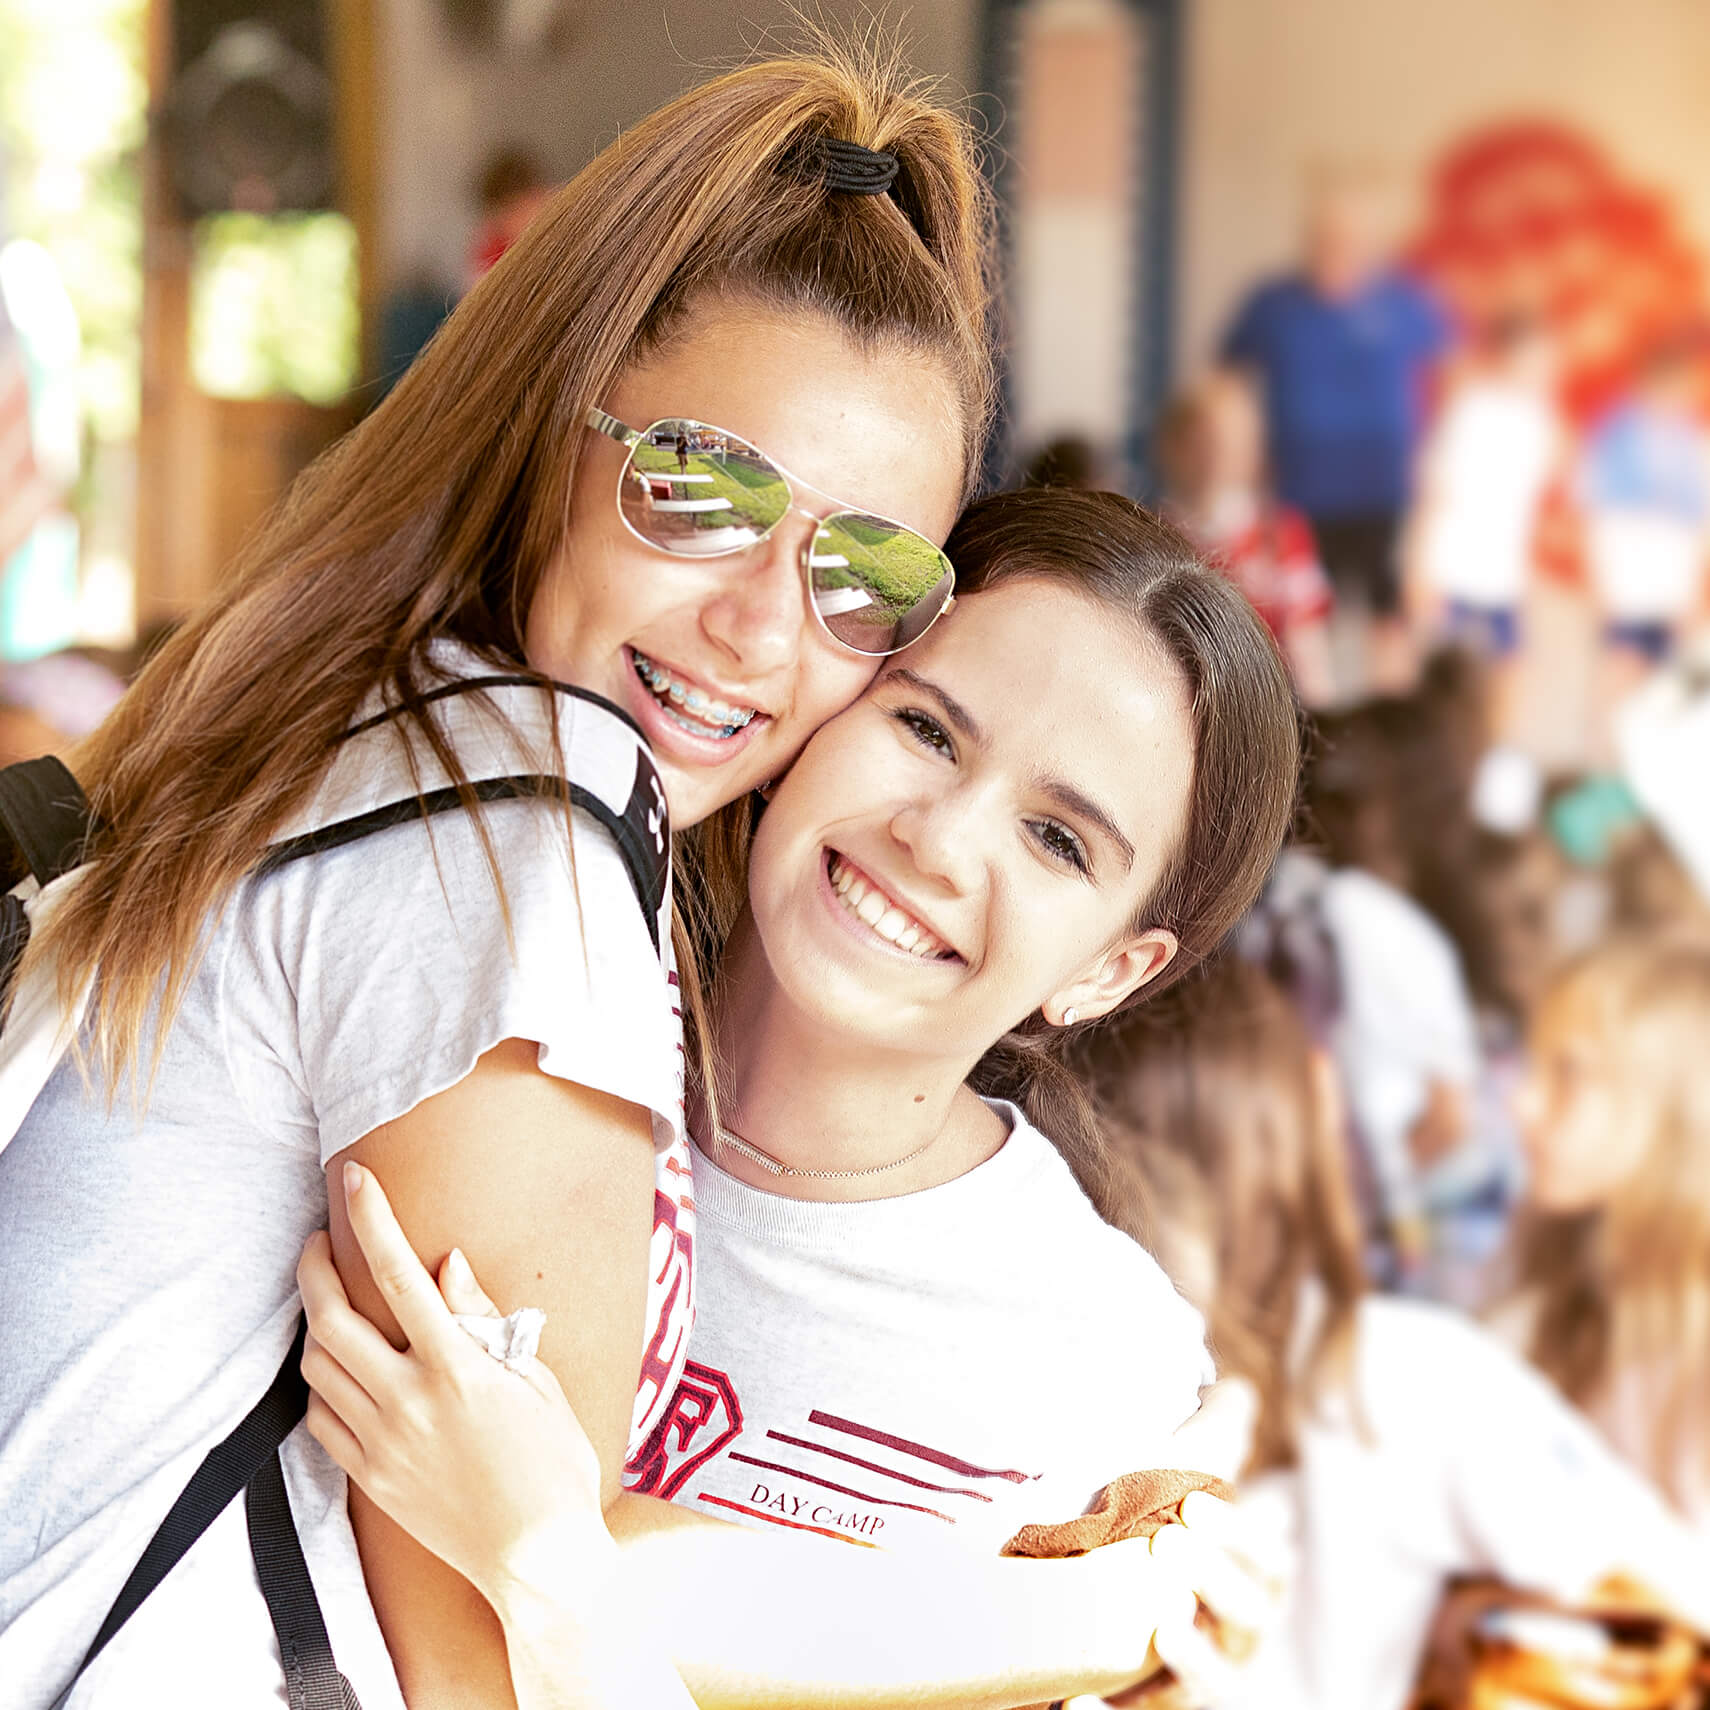 Two girls hugging and smiling.